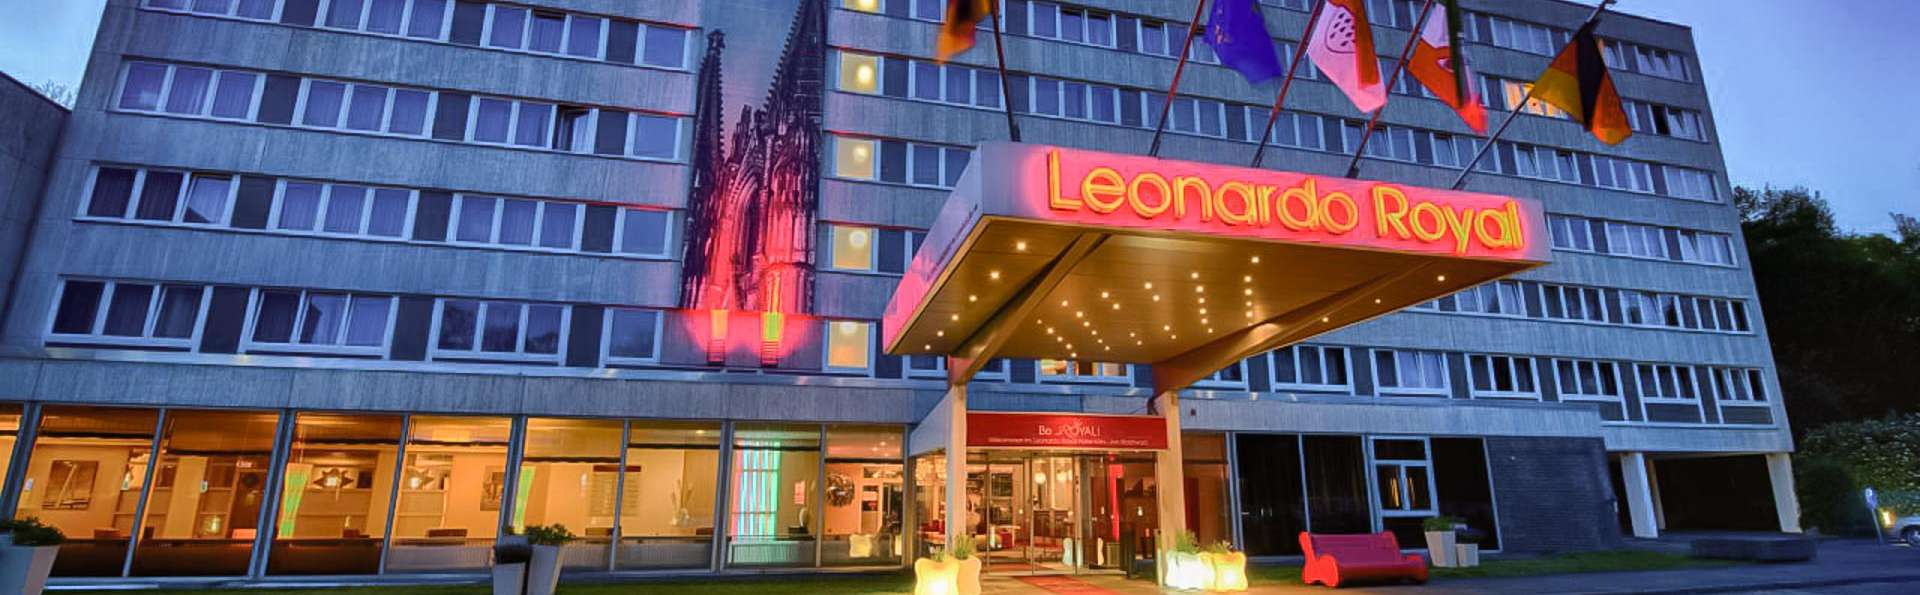 Leonardo Royal Hotel Koeln-Am Stadtwald - EDIT_FRONT_09.jpg